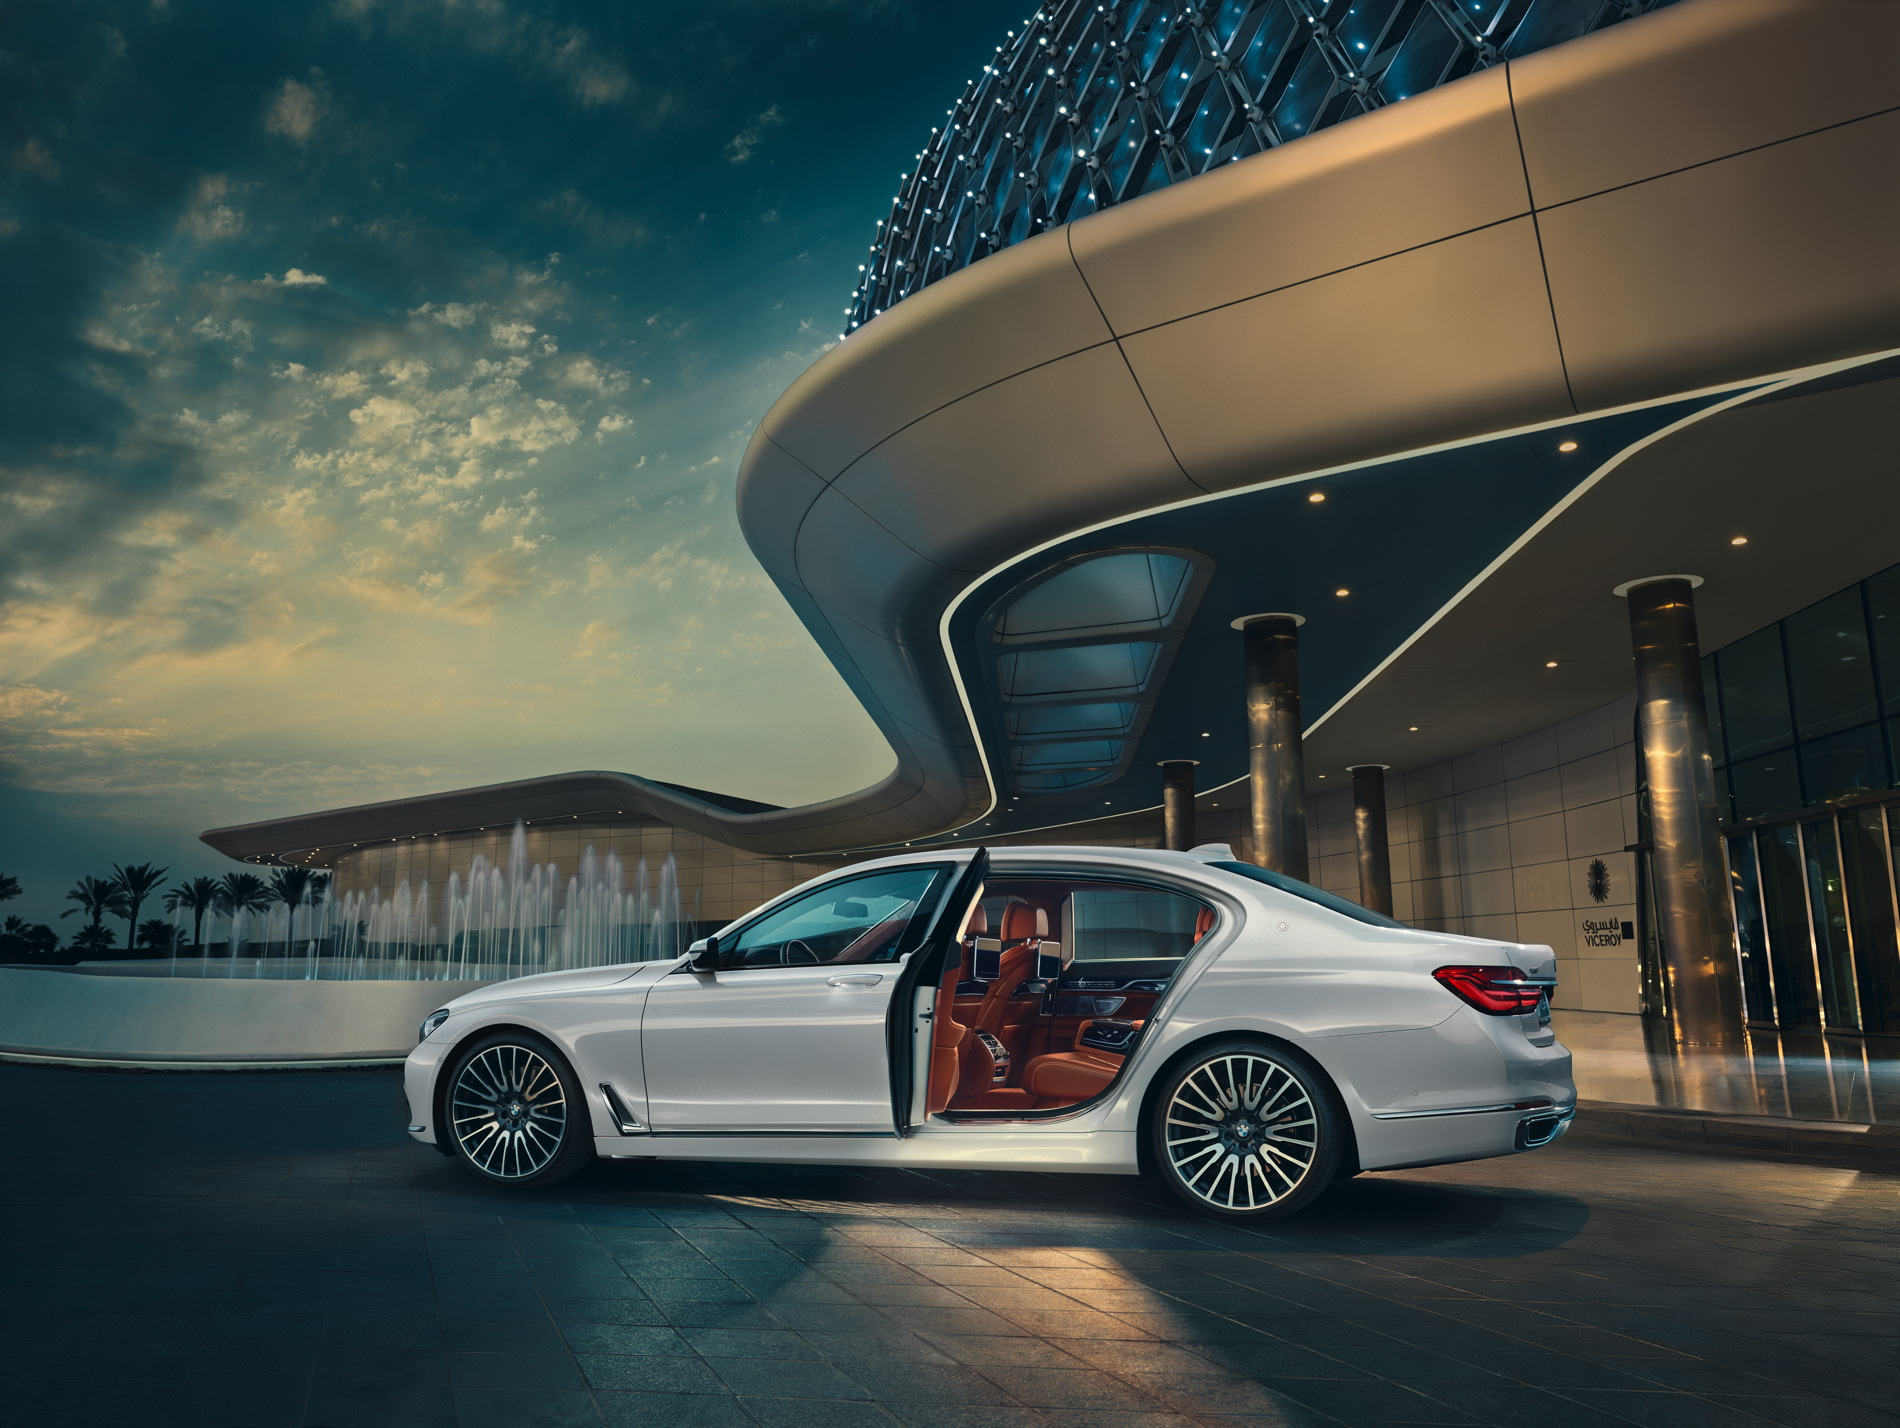 BMW Solitaire and Master Class Edition 7 Series 31